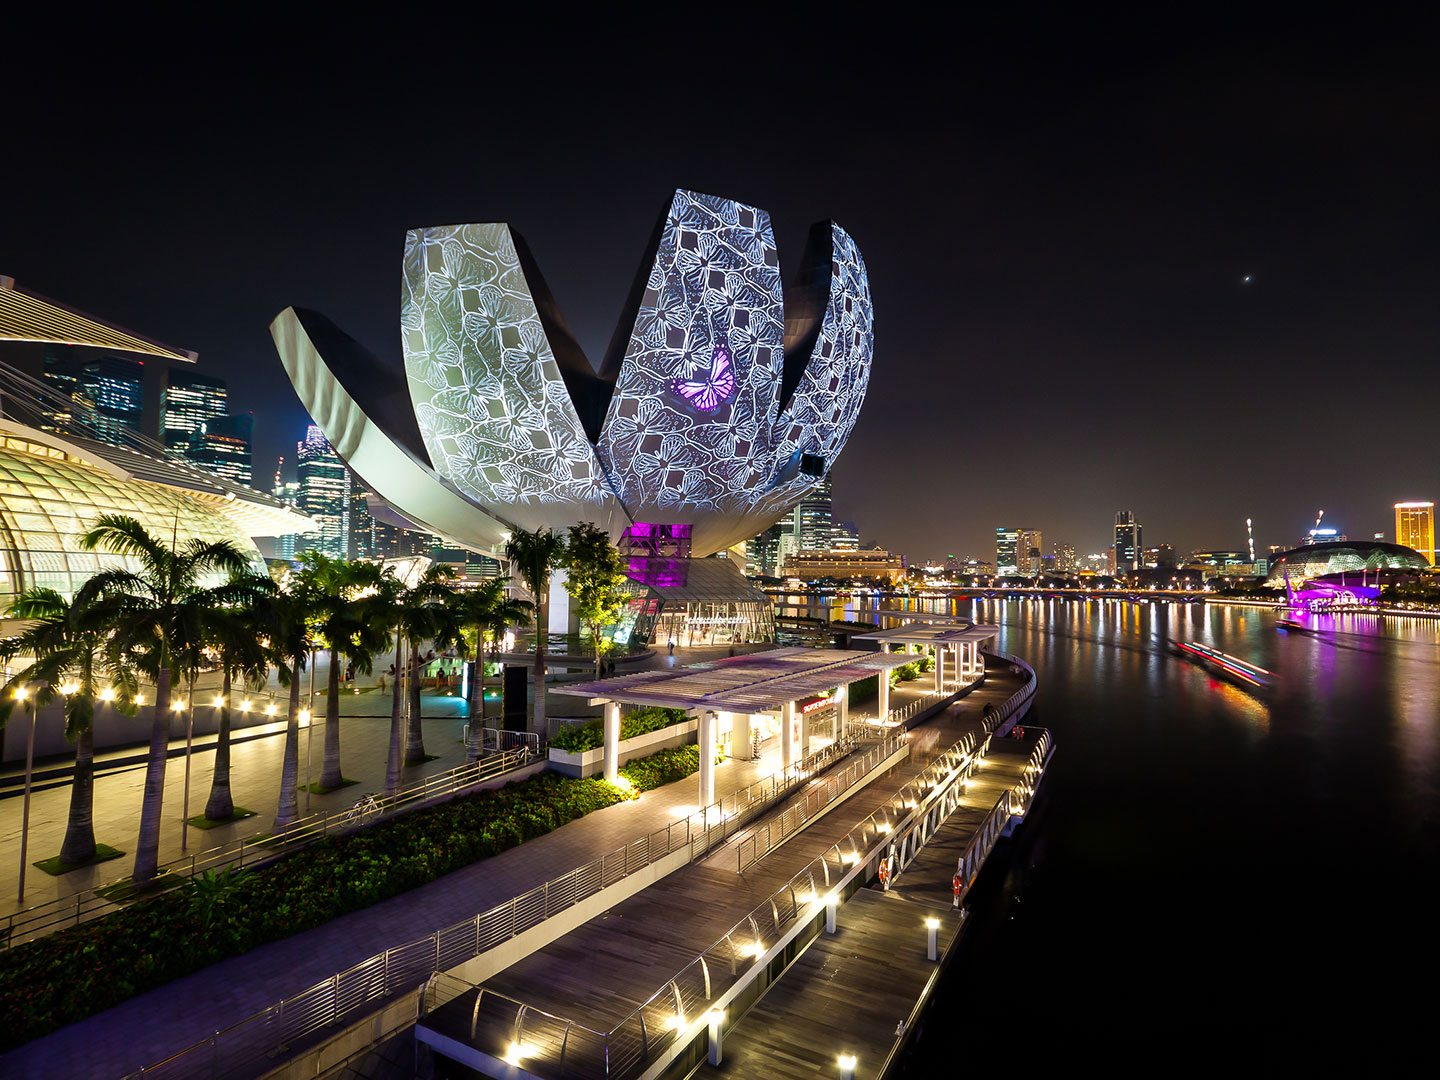 ArtScience Museum Marina Bay Sands Singapore